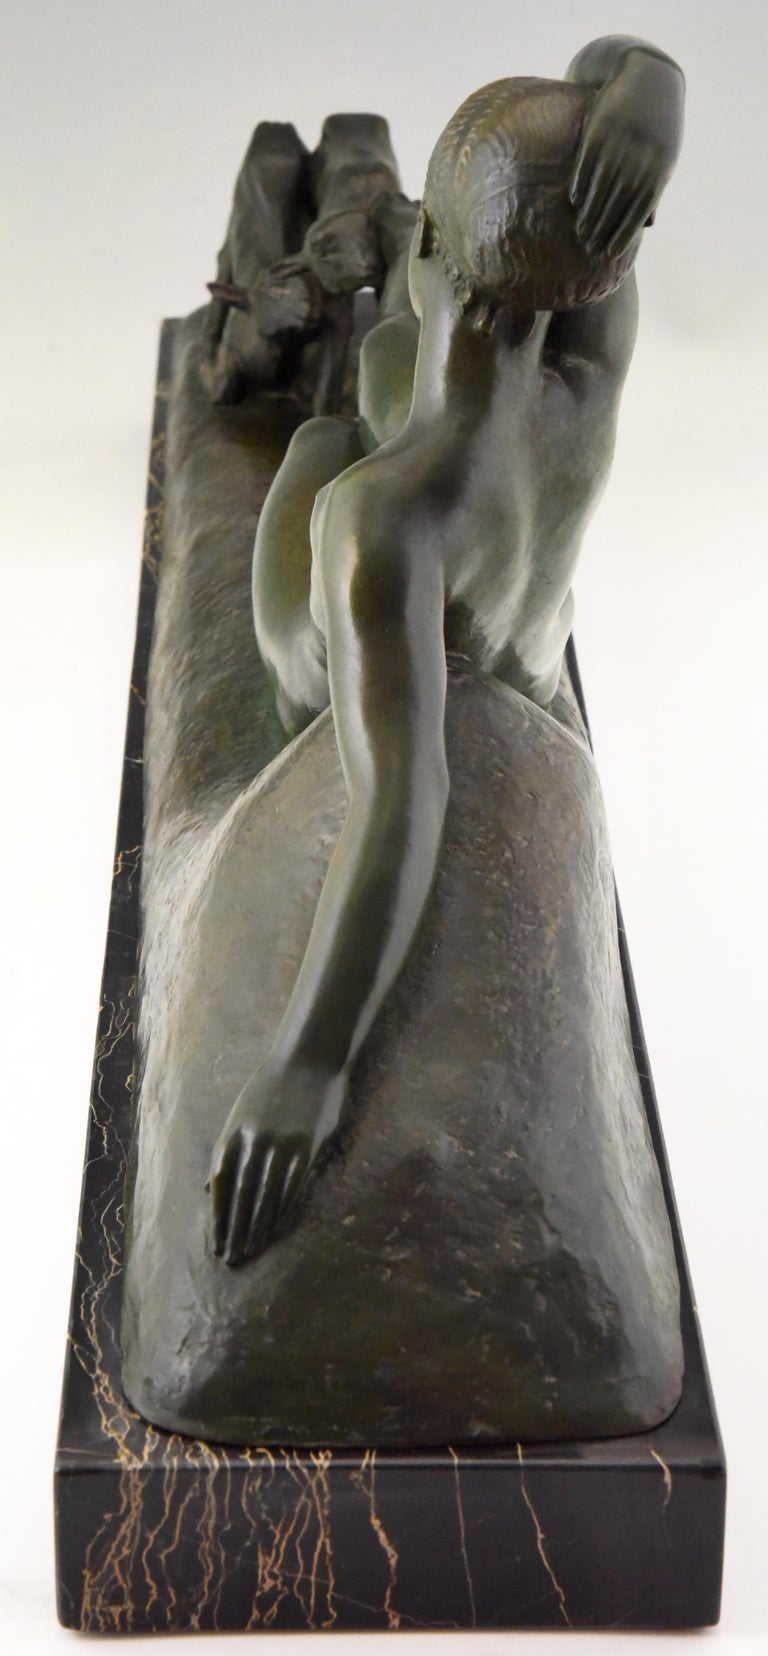 Art Deco Bronze Sculpture Reclining Nude with Goats Georges Gori, France, 1930 For Sale 1